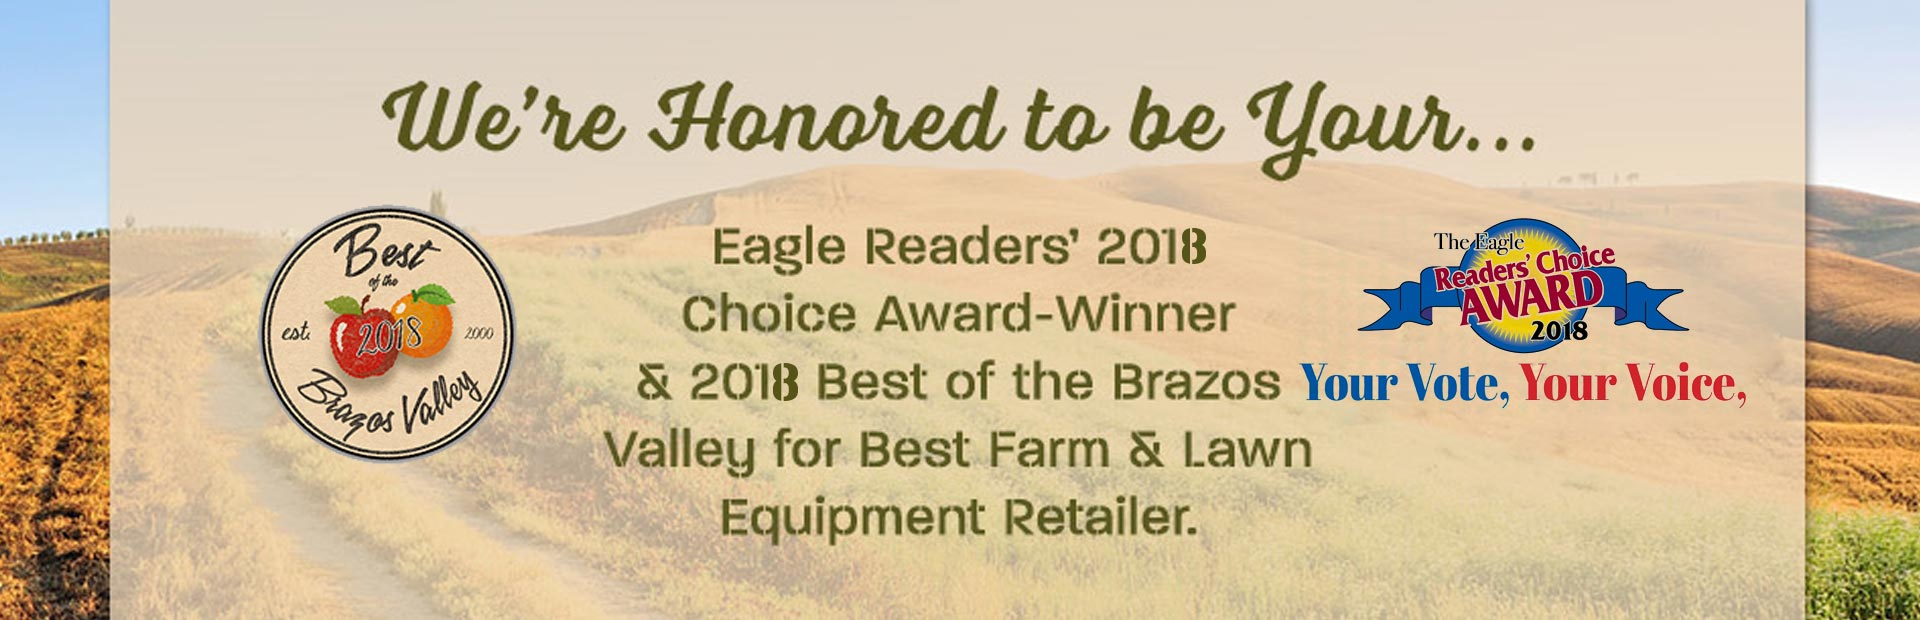 We're honored to be your Eagle Readers' 2018 Choice Award-Winner and 2018 Best of the Bravos Valley for Best Farm & Lawn Equipment Retailer!